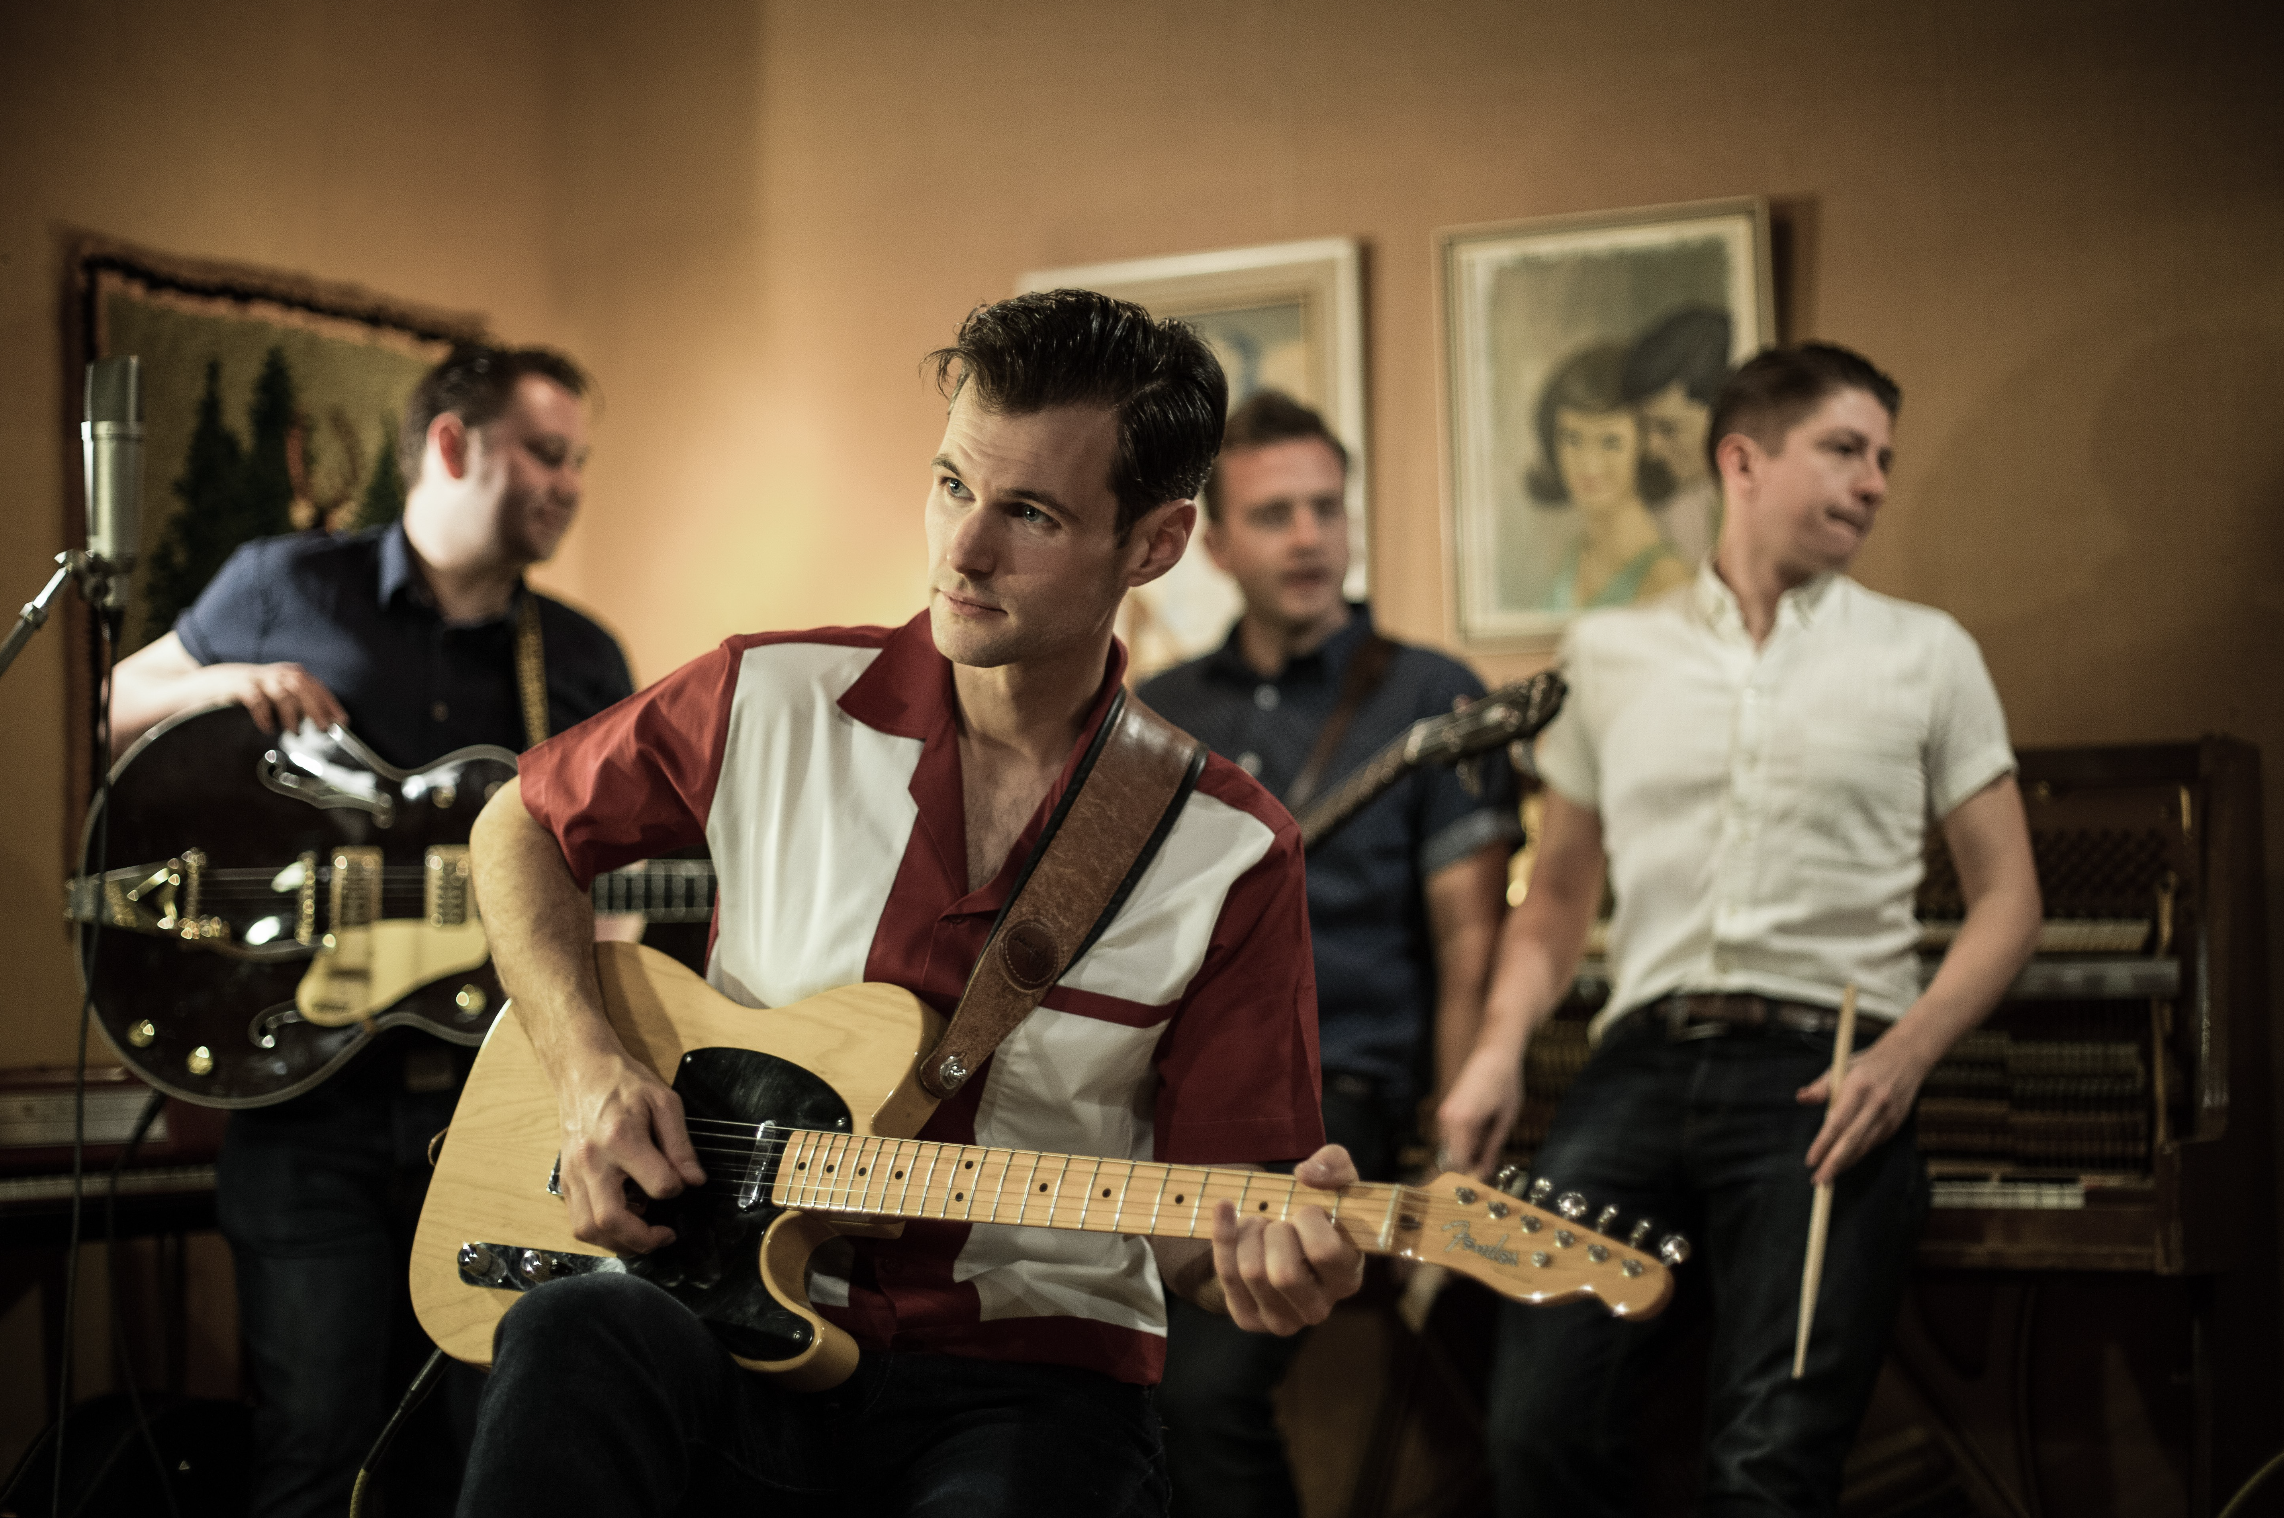 The Bluejays, featuring Ollie Seymour-Marsh, Dan Graham and Chris Reid, are a youthful band whose new show, Rock and Roll Revolution, doubles as a history lesson in 50s music